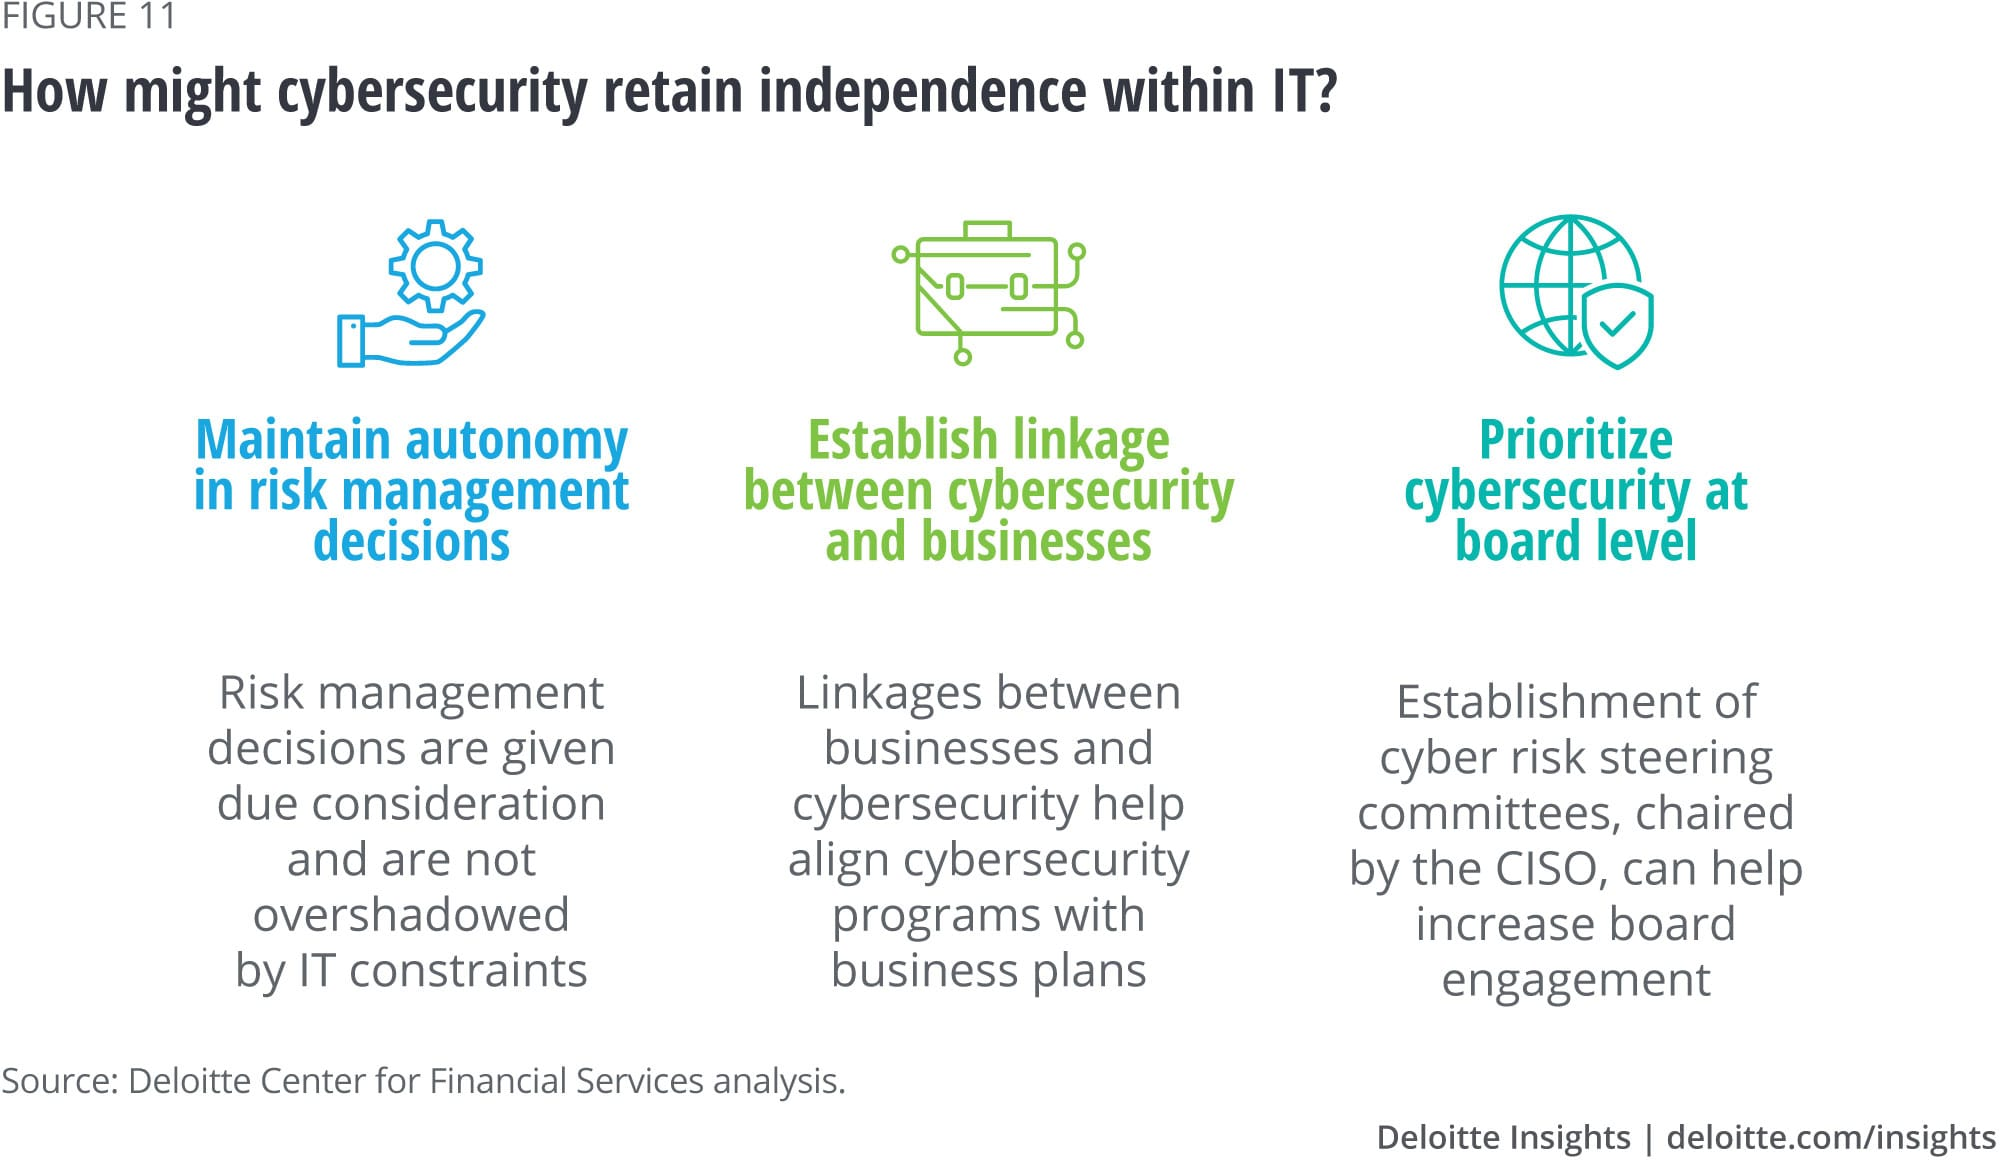 How might cybersecurity retain independence within IT?